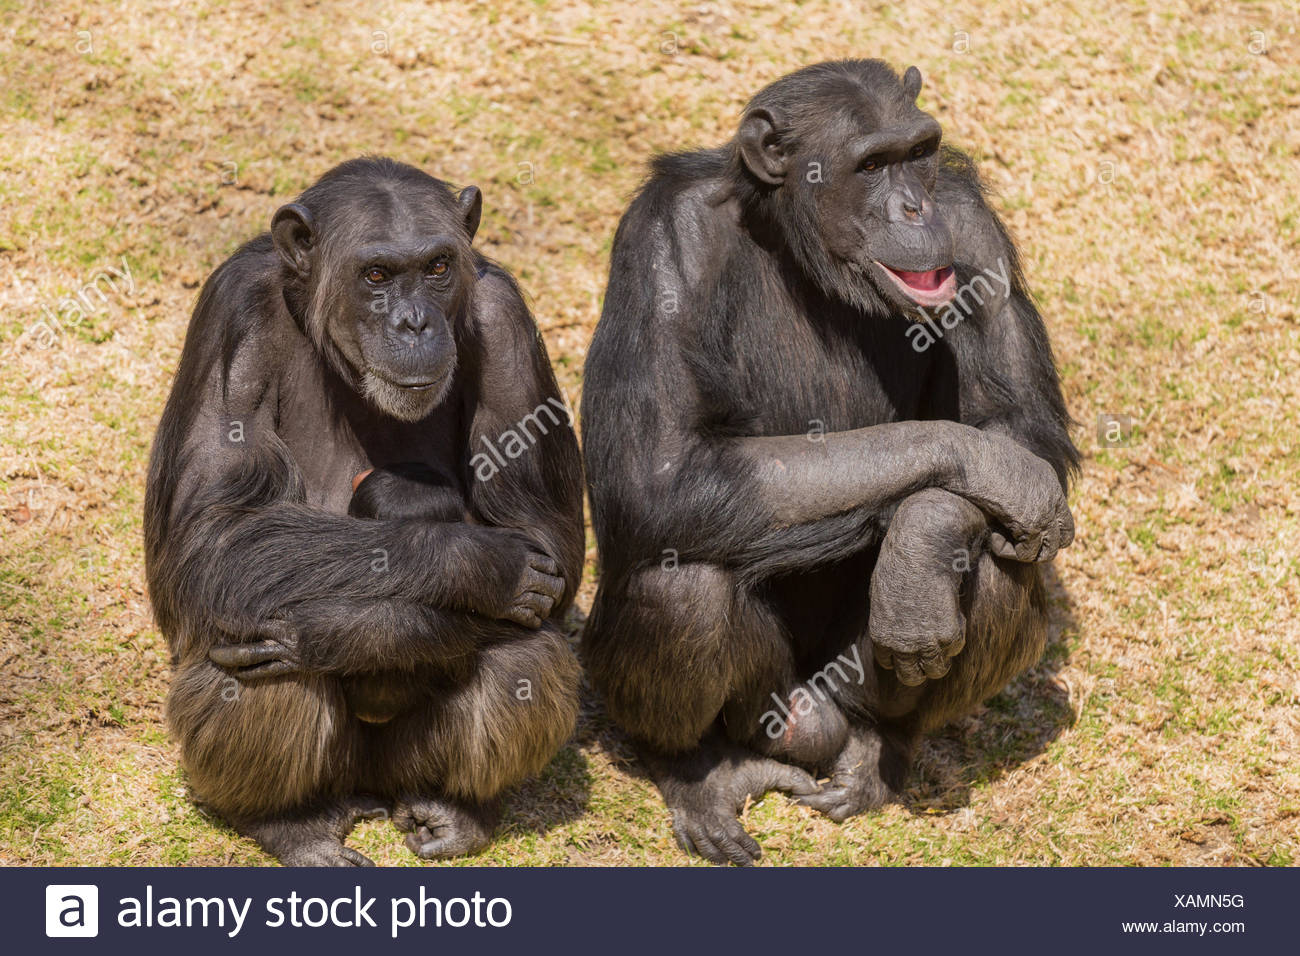 animal africa wildlife safari animal mammal wild monkey black swarthy jetblack deep black wildlife chimpanzee nature ape chimp - Stock Image